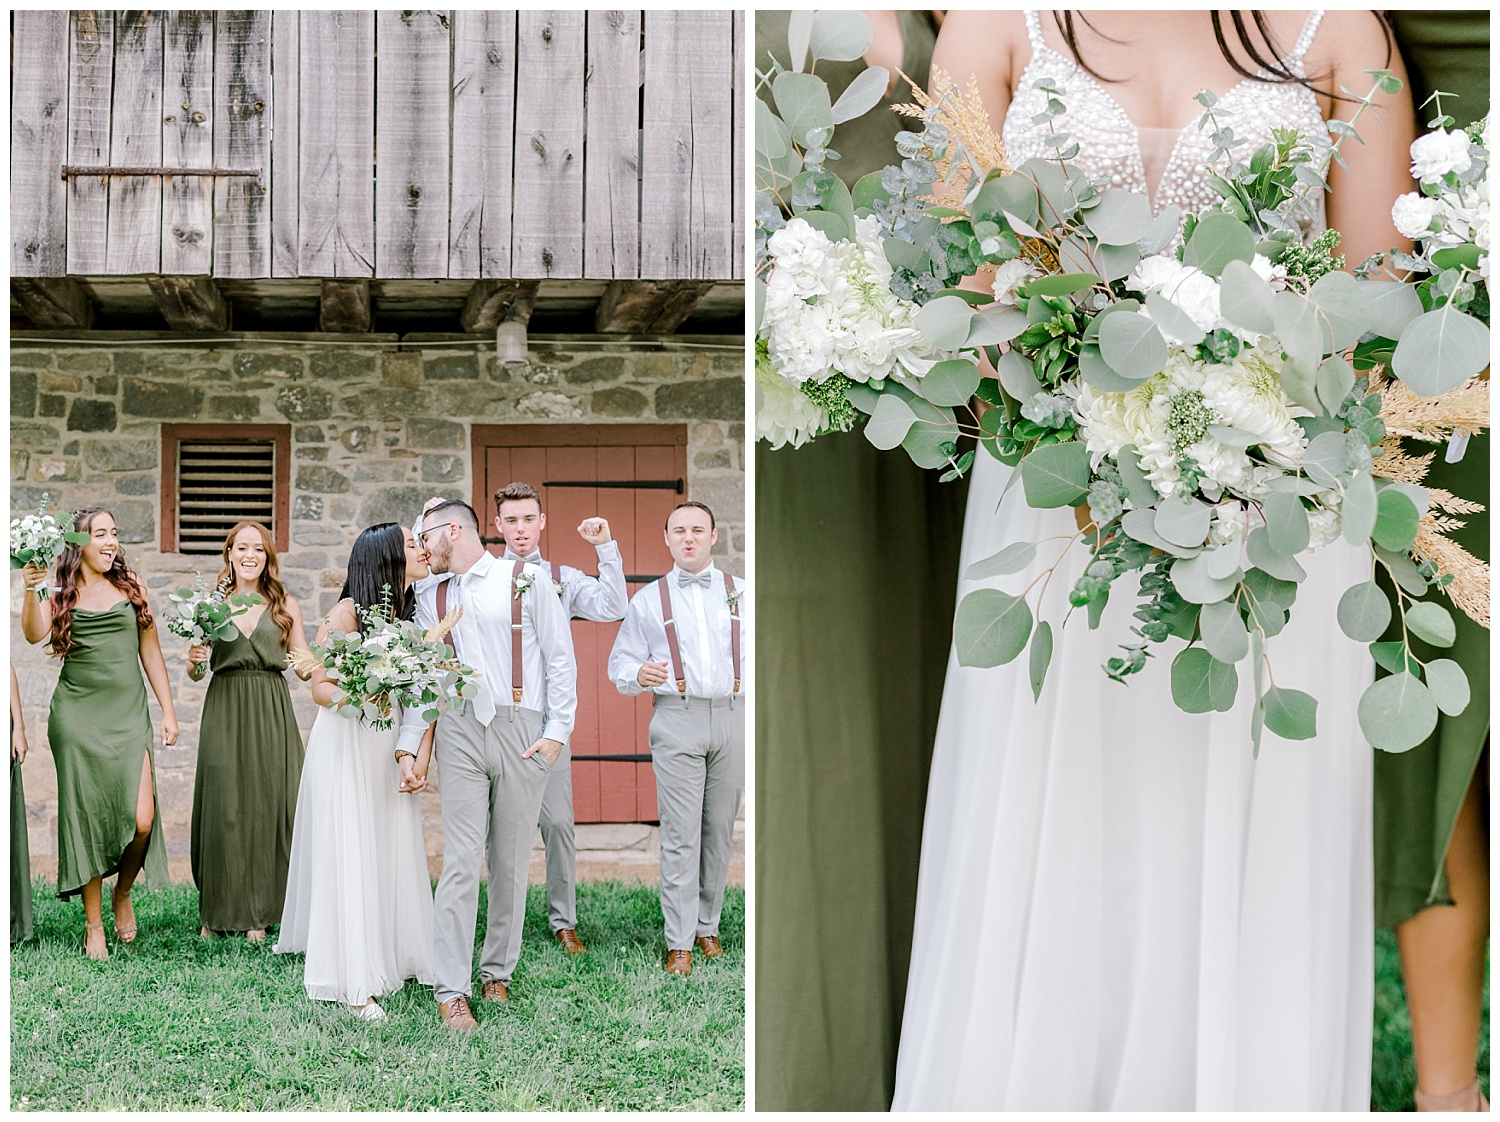 Olive green and white rustic barn wedding at burnside plantation in bethlehem pennsylvania by PA based destination wedding and lifestyle photographer Lytle photography (29).jpg